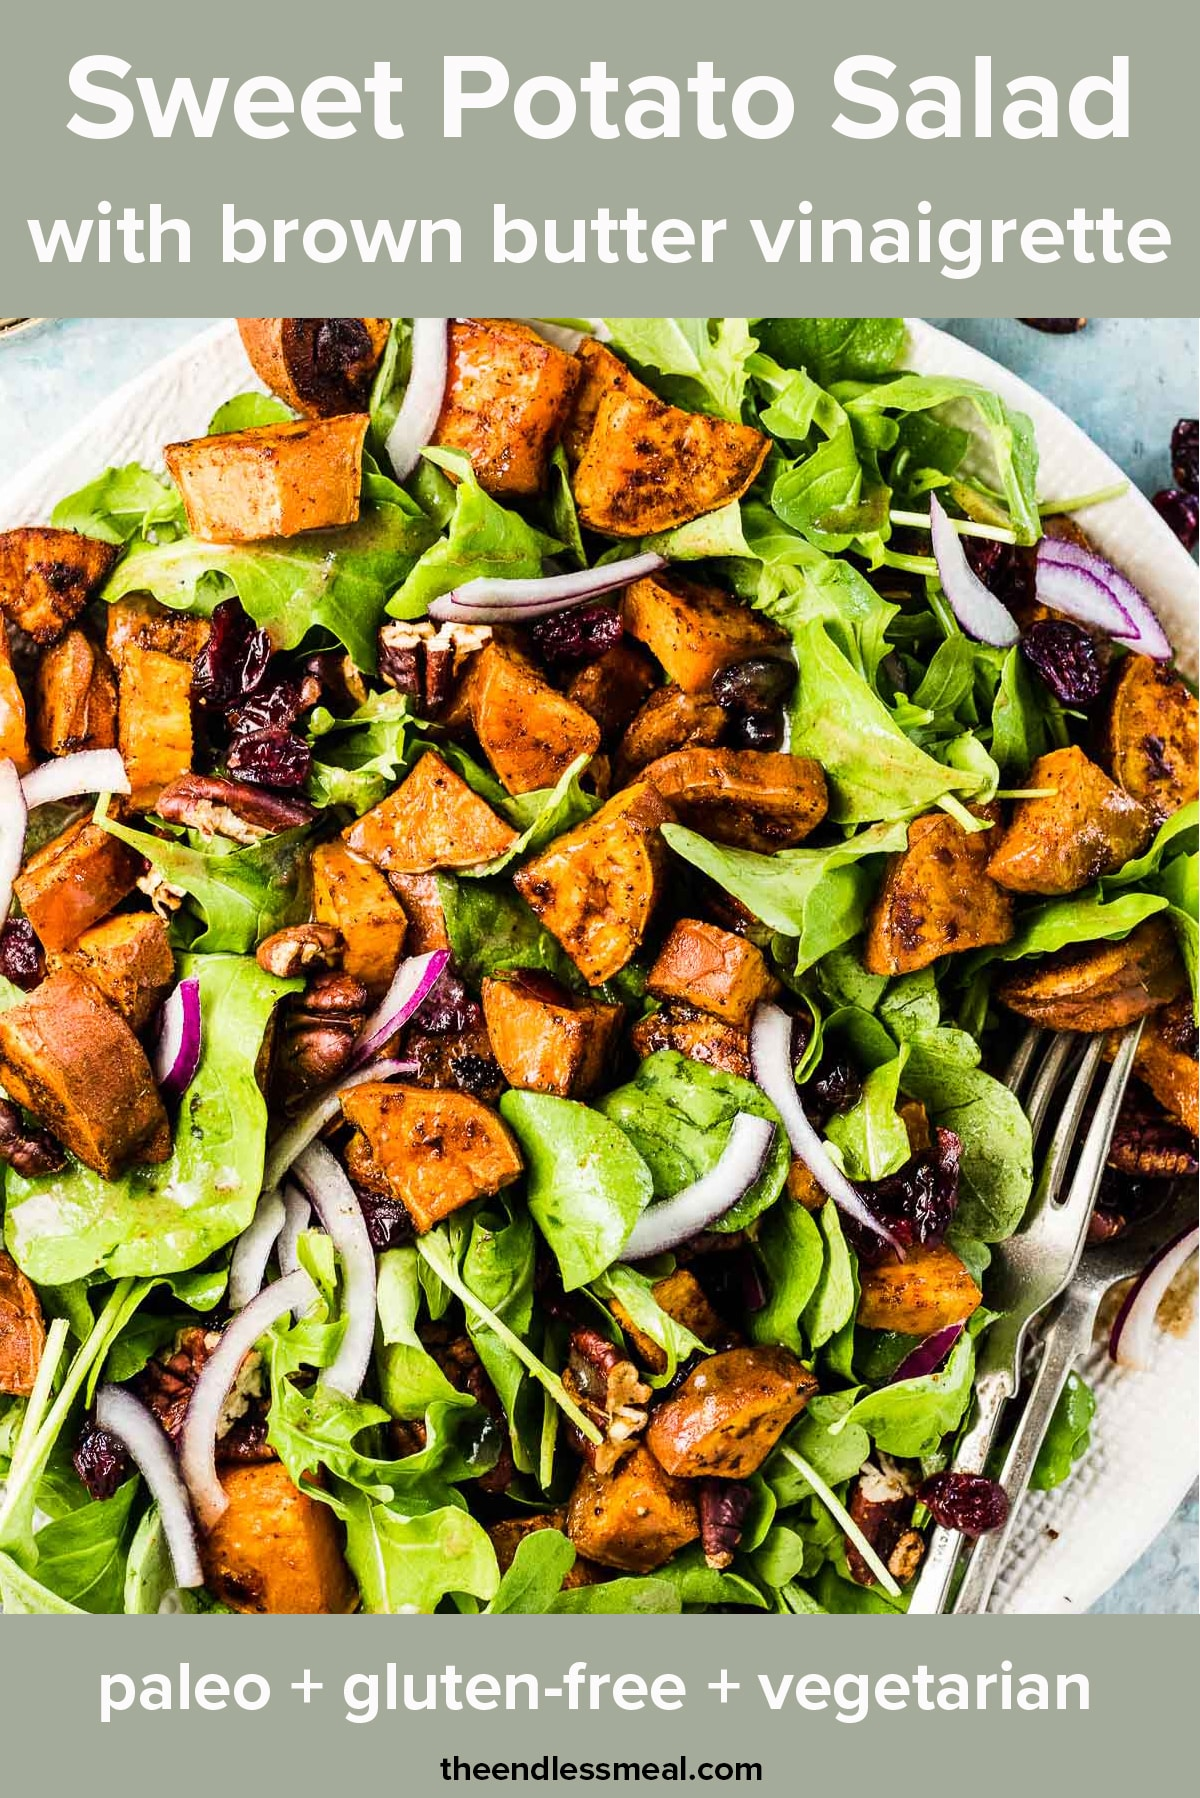 A plate filled with arugula and sweet potato salad with the recipe title on top of the picture.